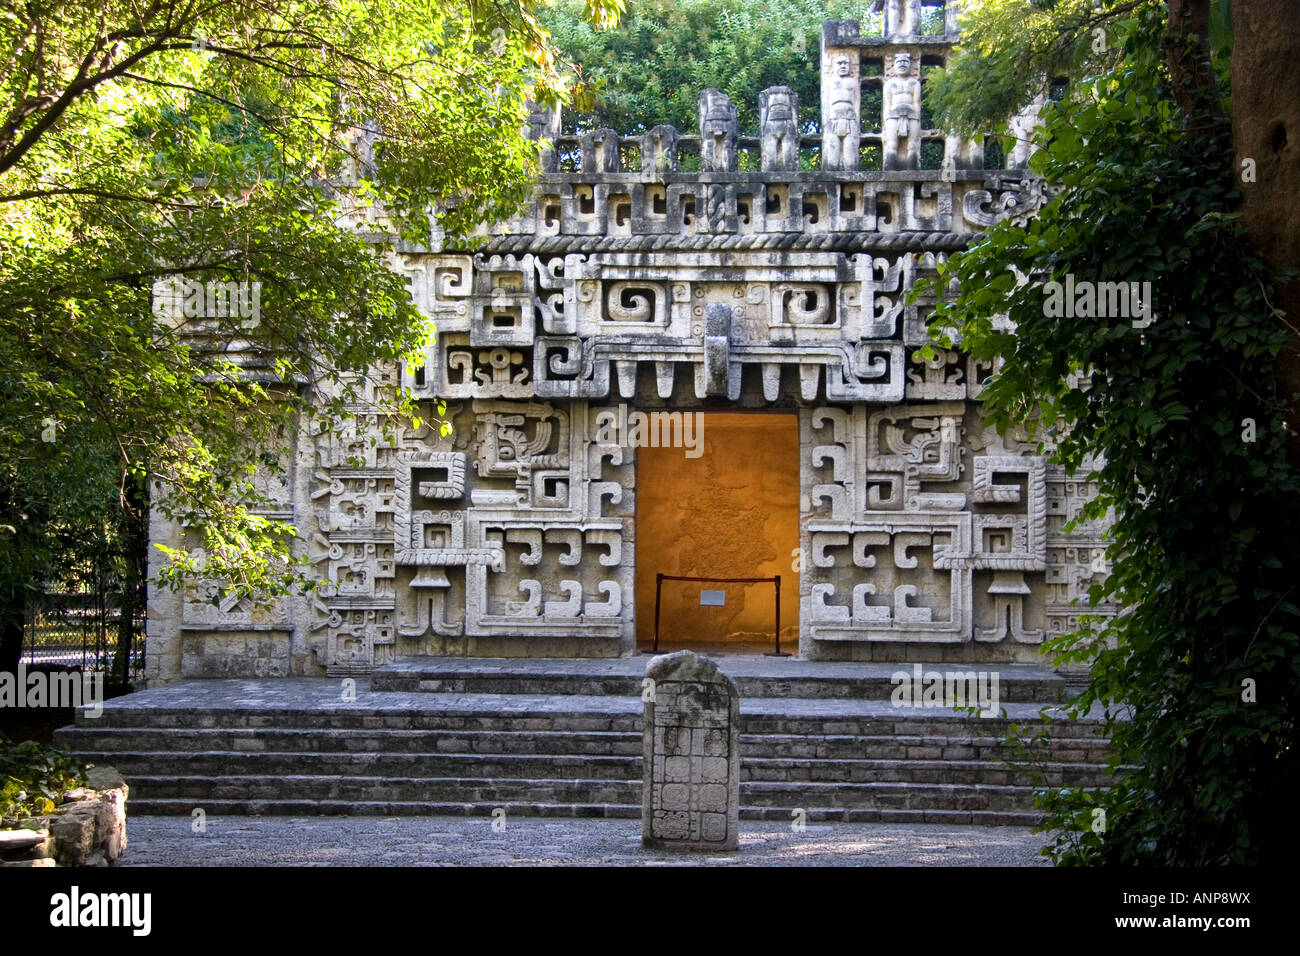 An Aztec ruin reconstructed at the National Museum of Anthropology in Mexico City Mexico - Stock Image